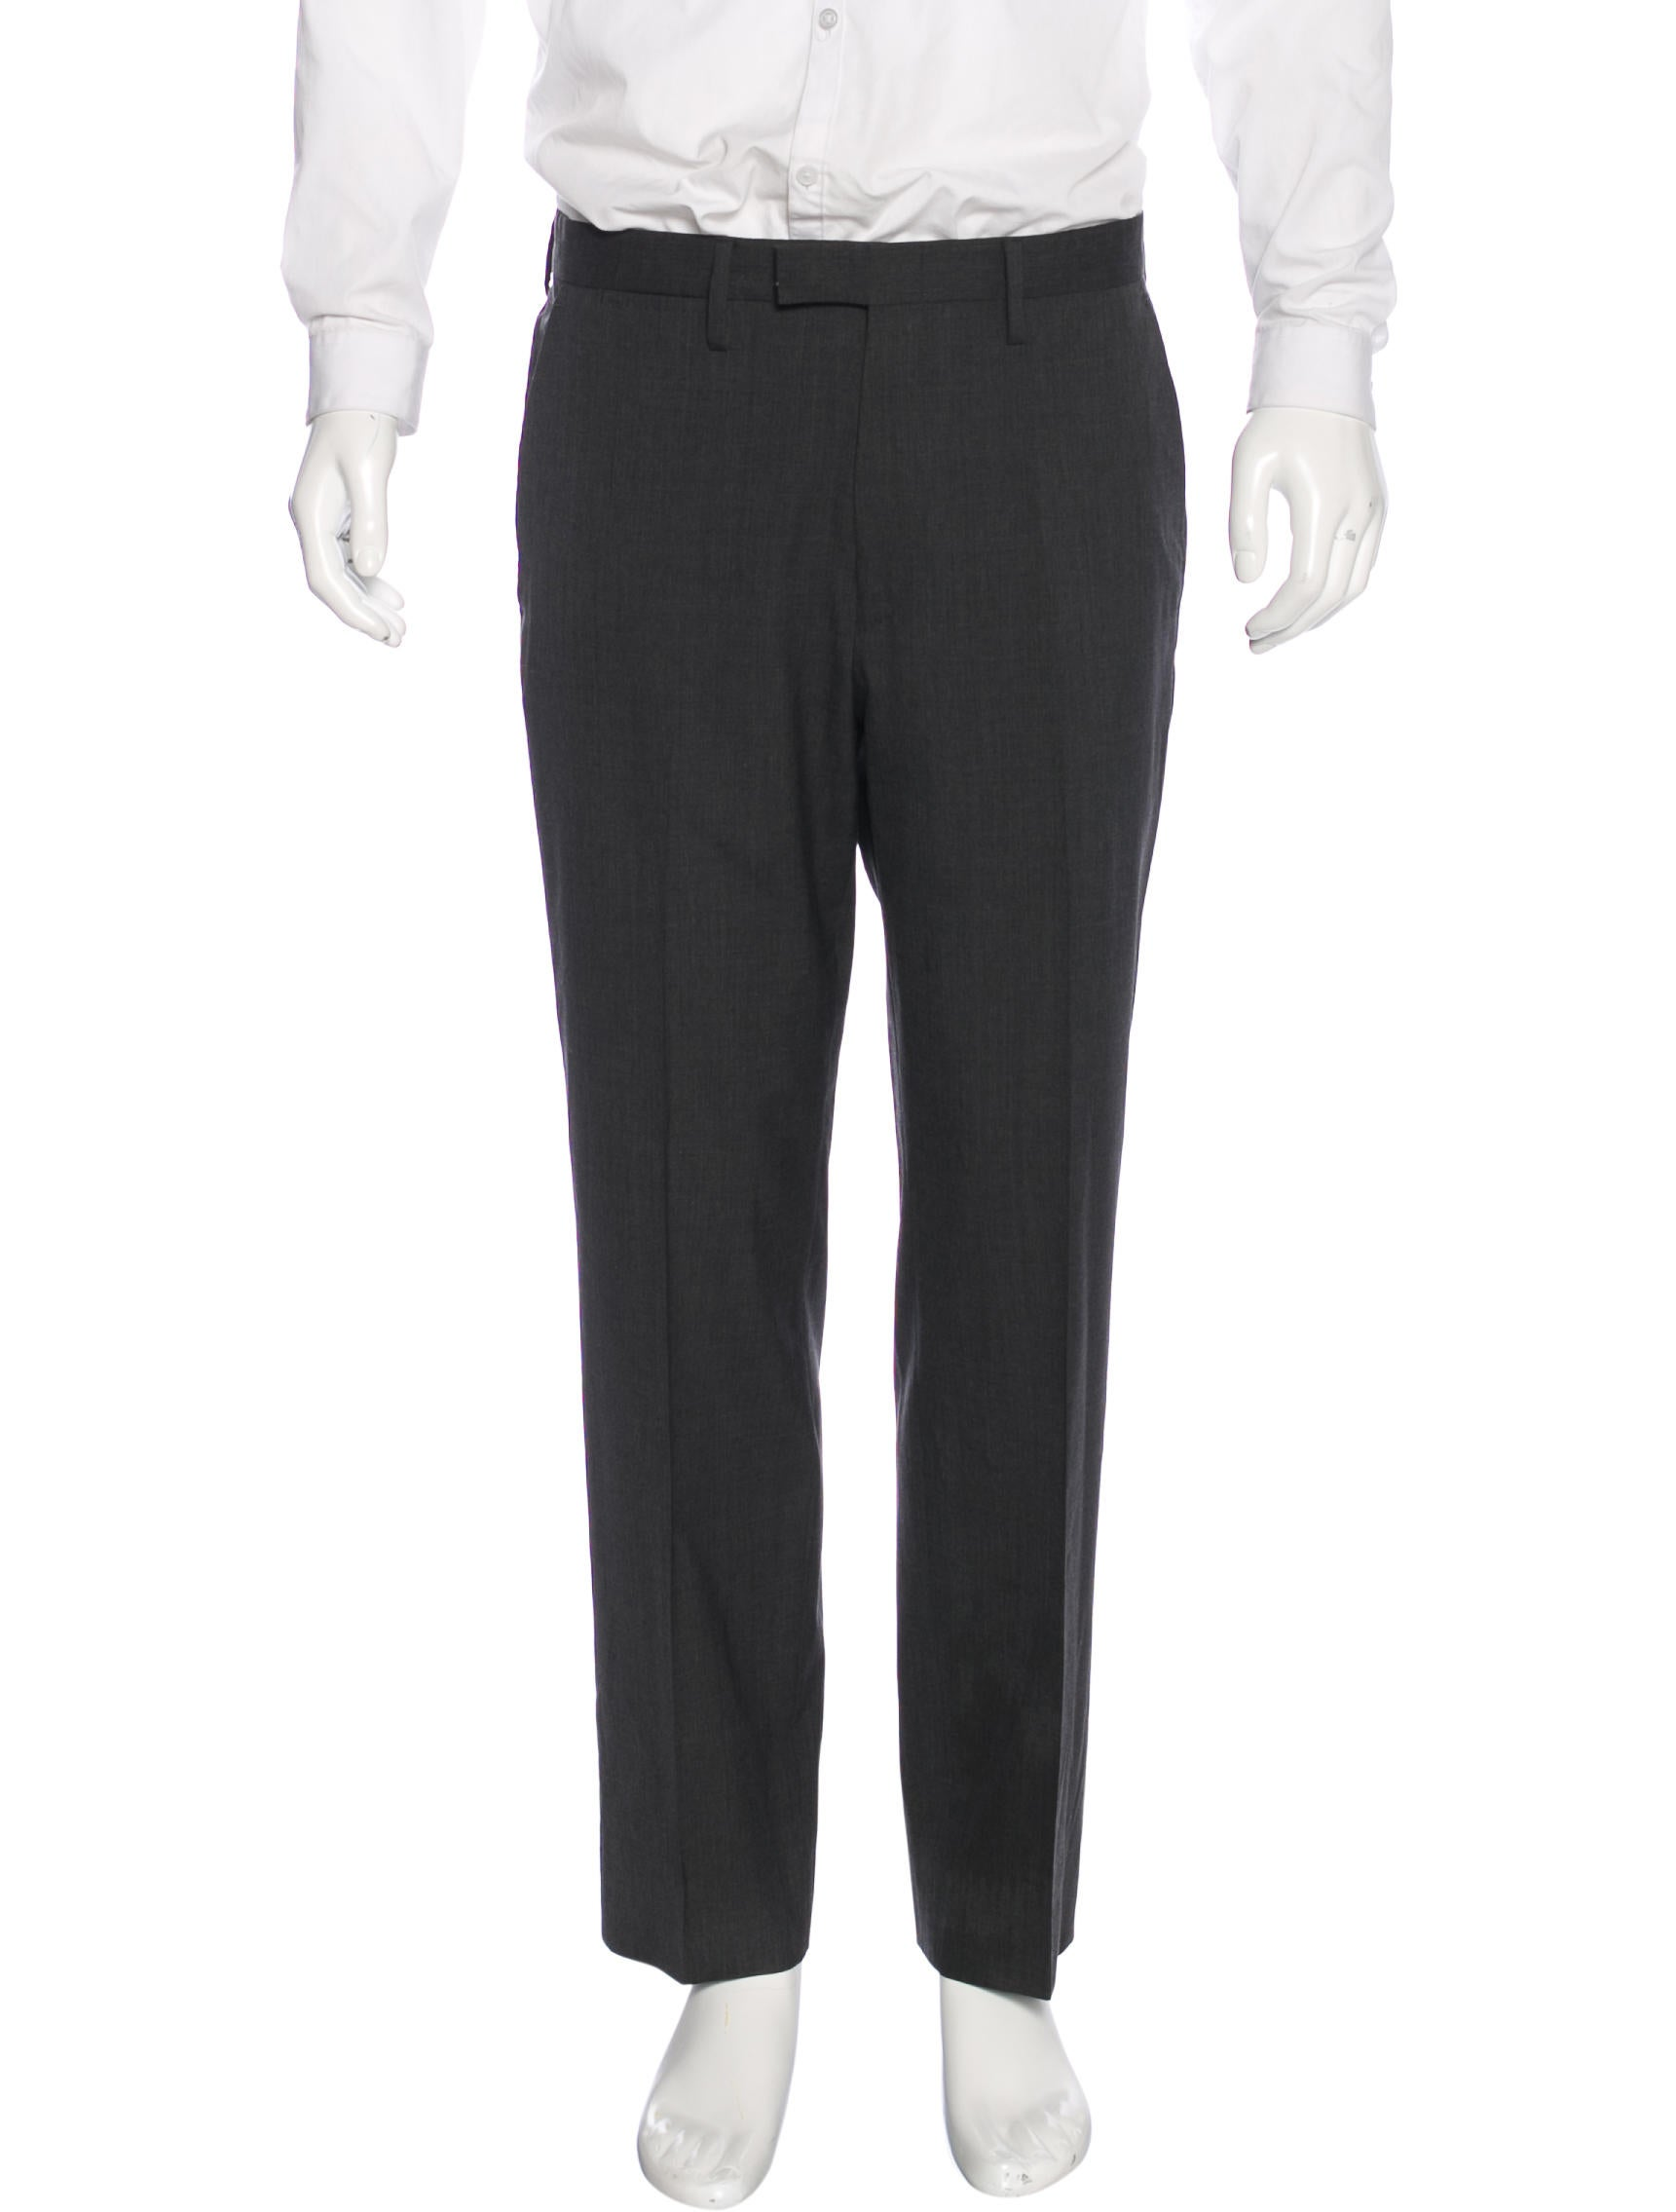 Gucci Woven Dress Pants - Clothing - GUC158848 | The RealReal